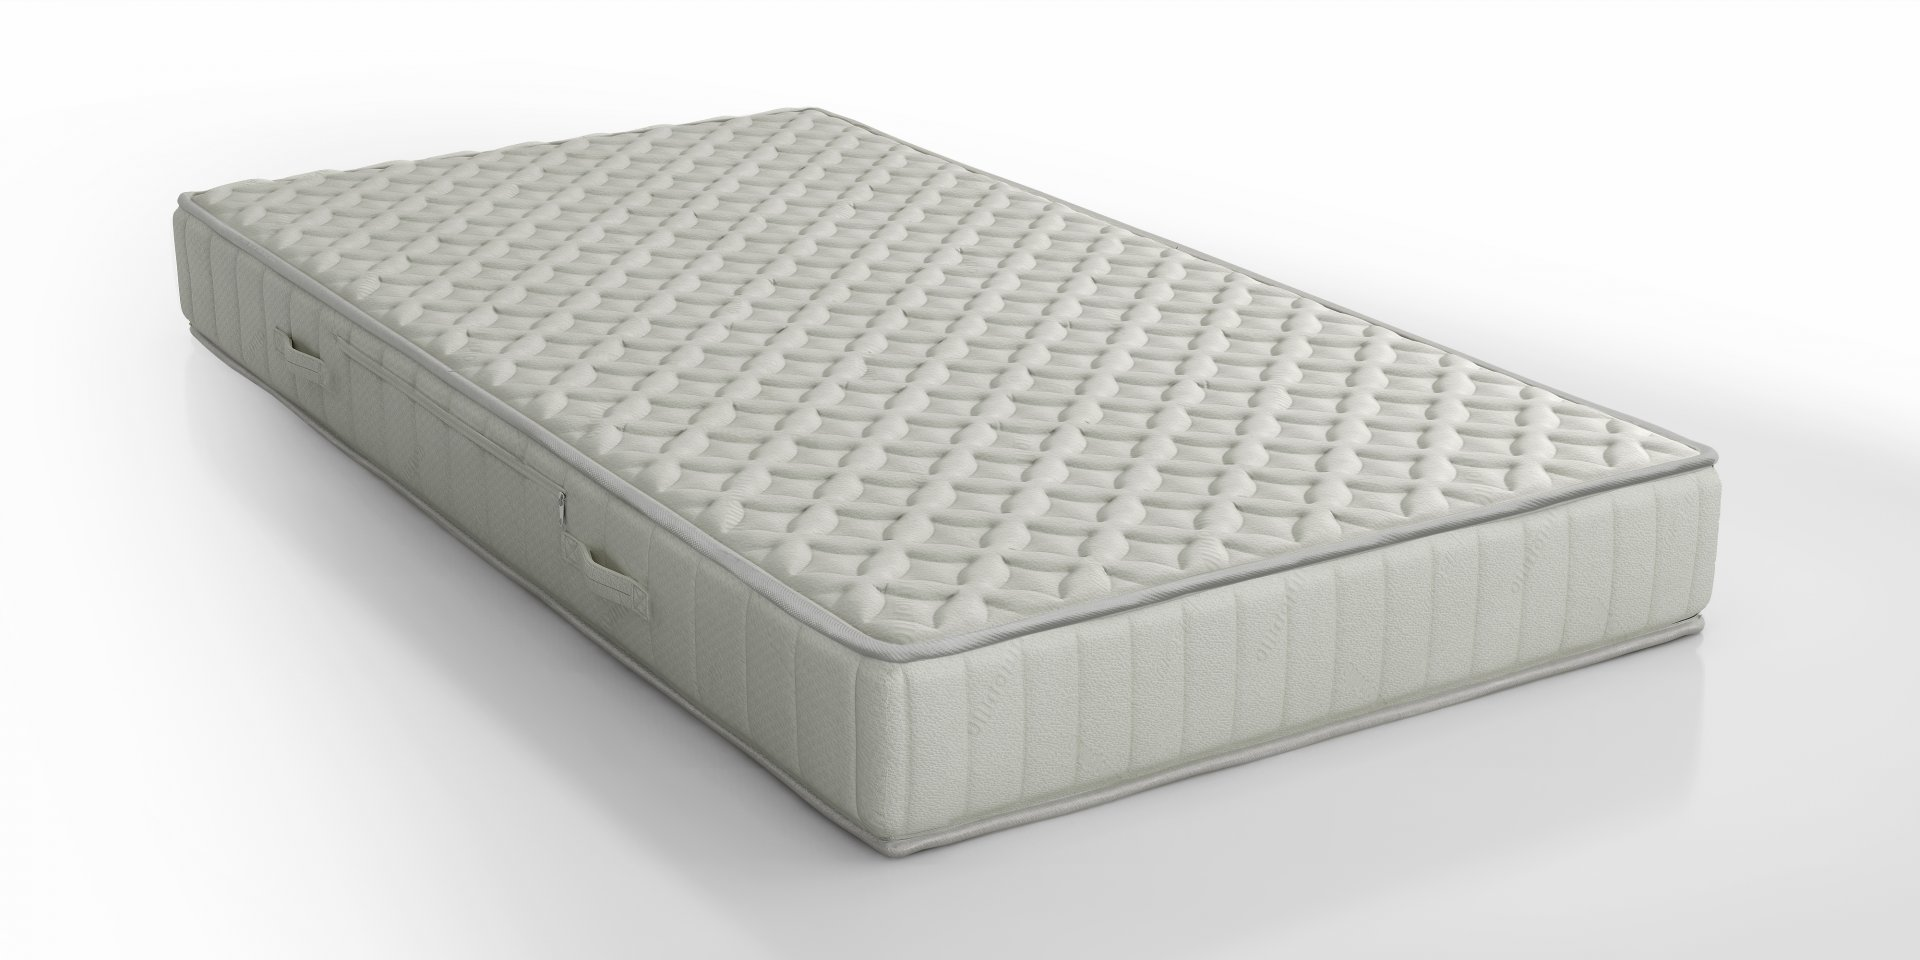 Dunlopillo Mattress Image